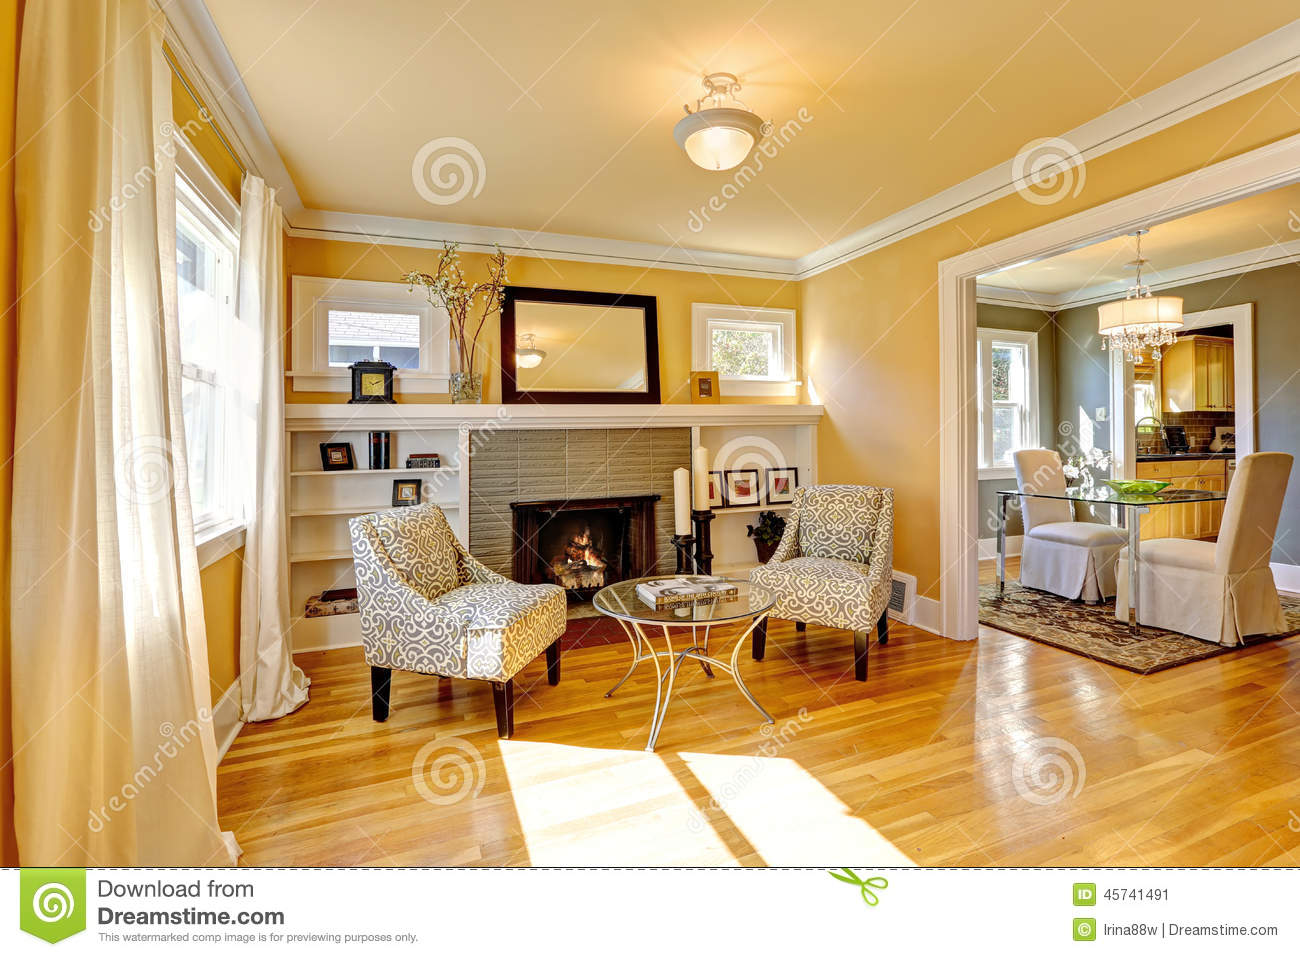 Cozy Sitting Area By The Fireplace Stock Image